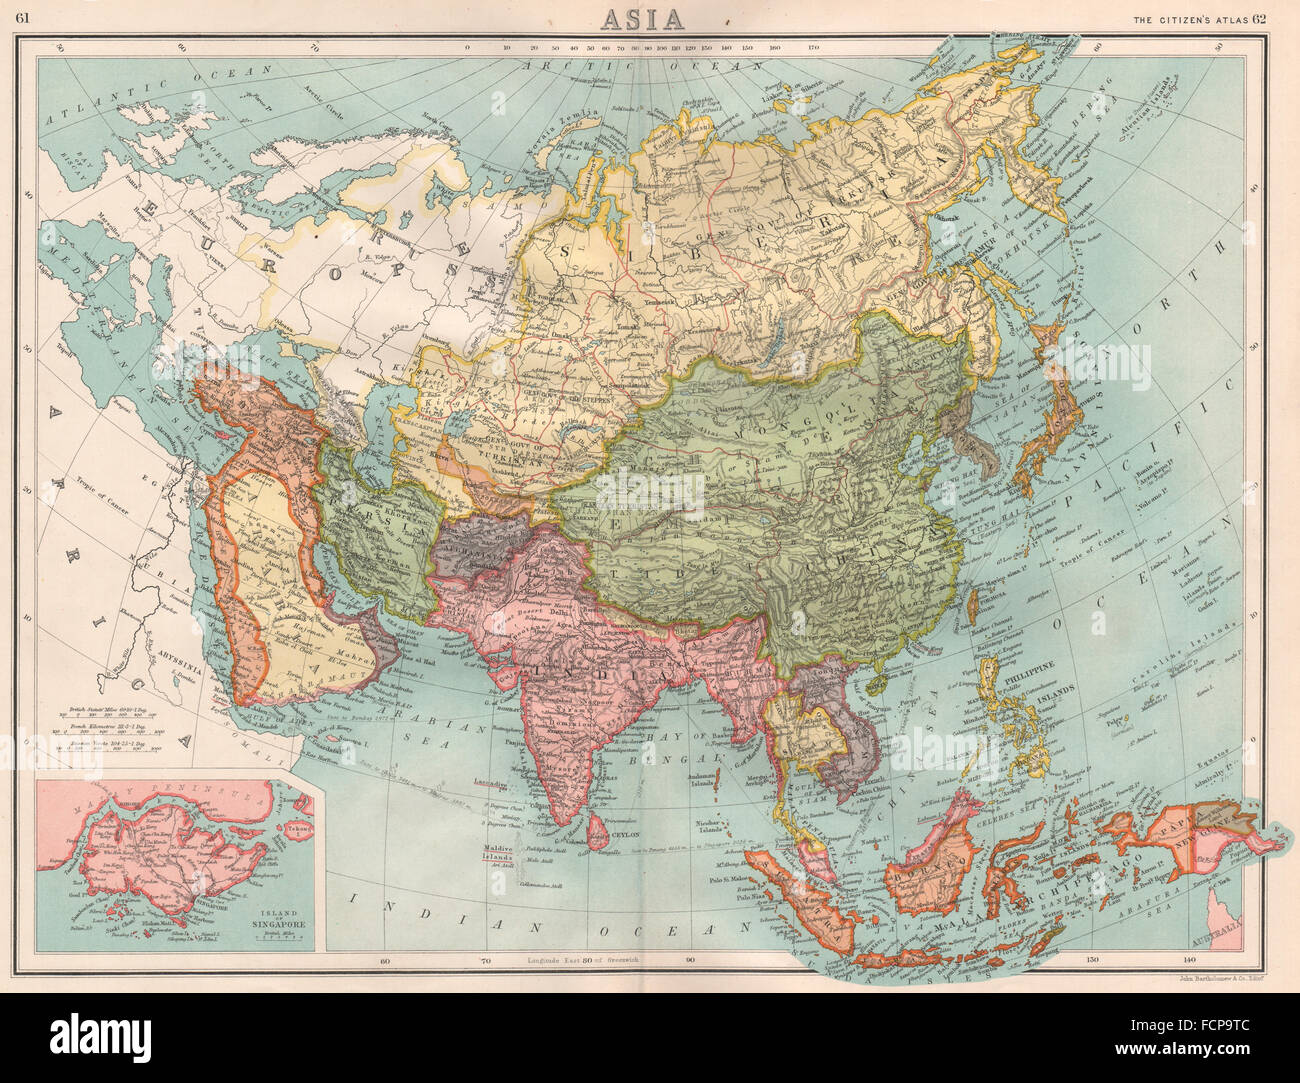 ASIA: large inset map of Singapore island. Ottoman Empire ...